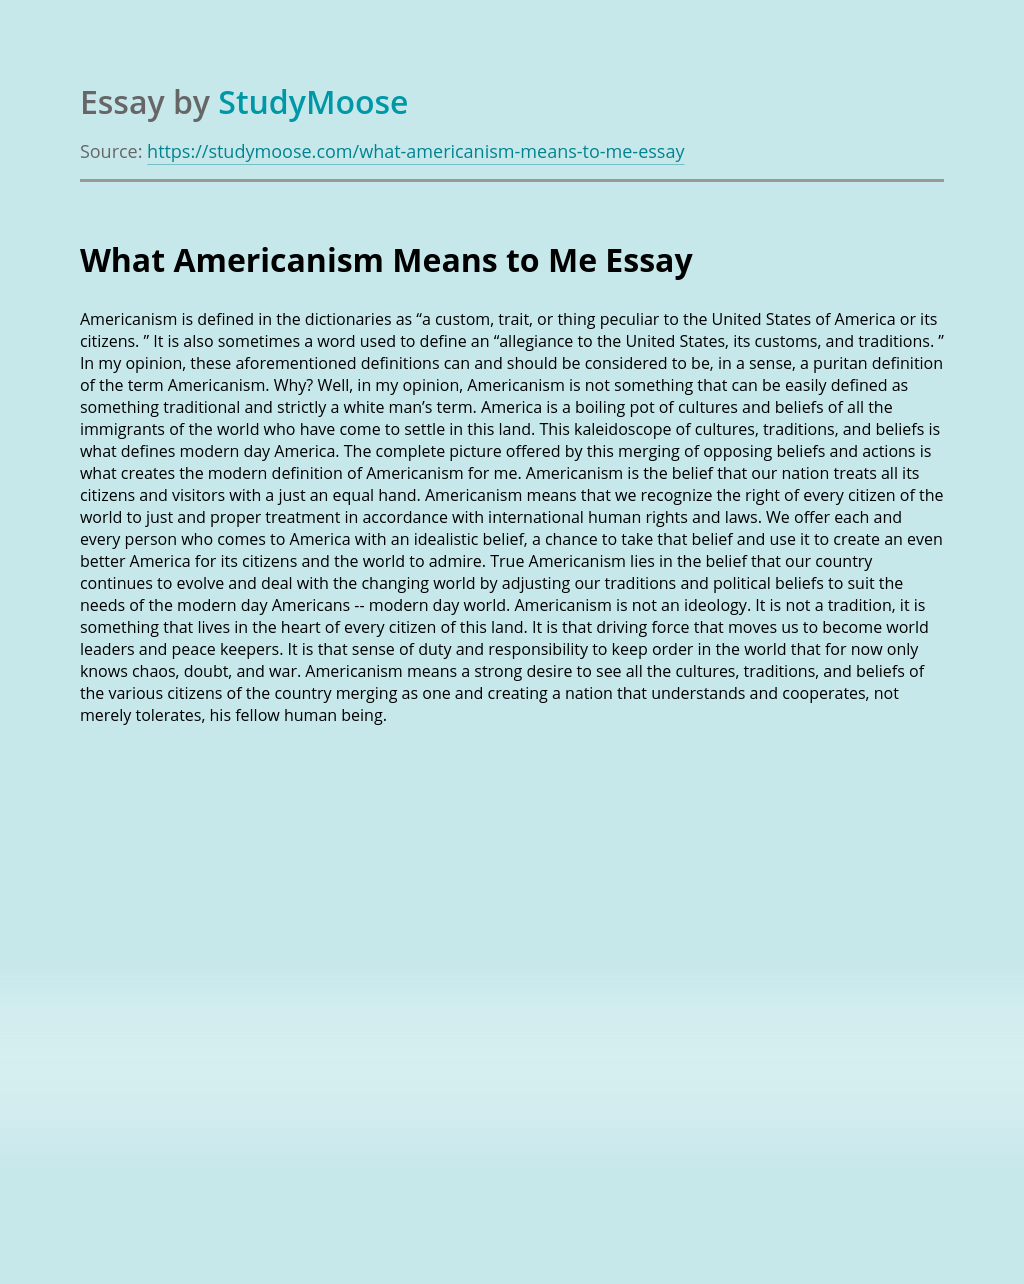 What Americanism Means to Me